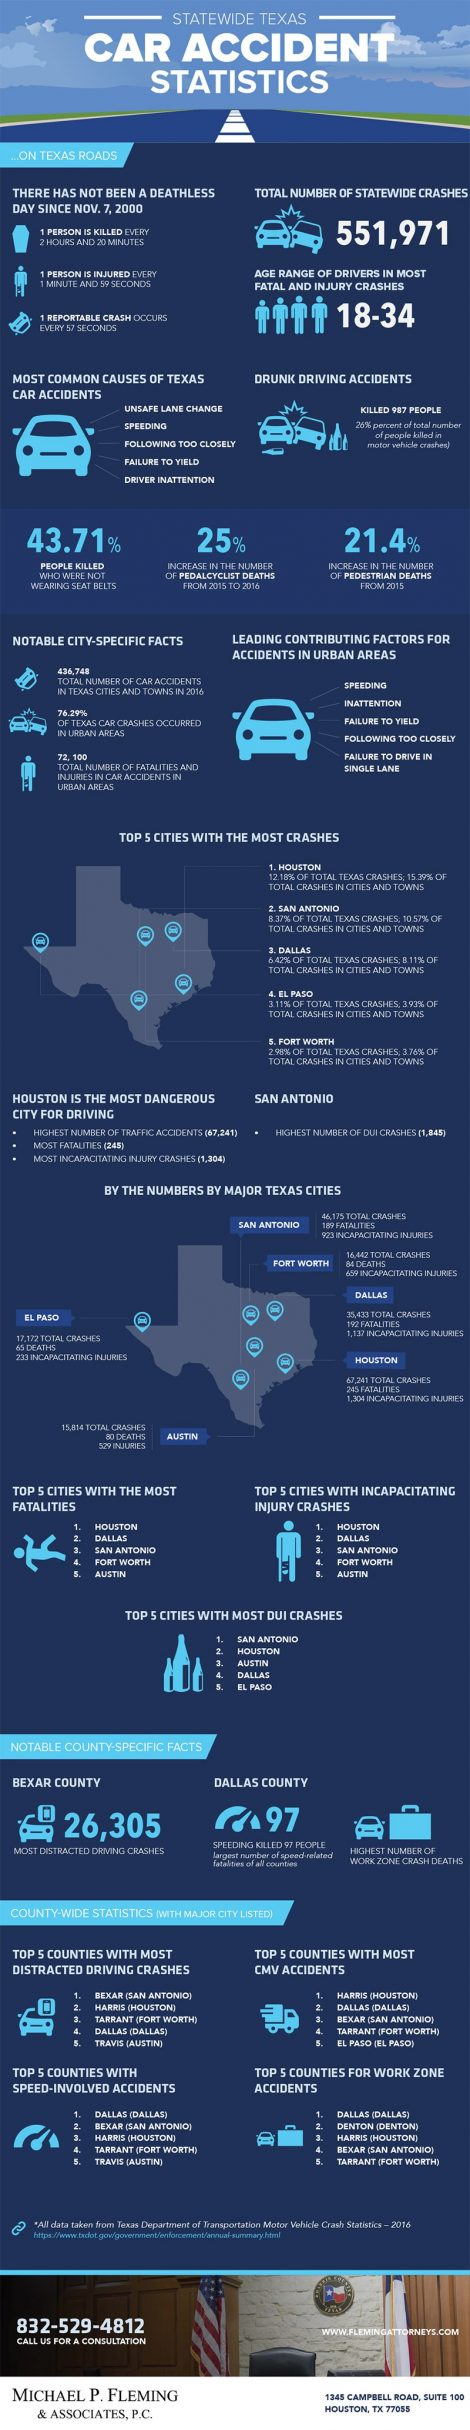 Statewide Texas Car Accident Statistics infographic